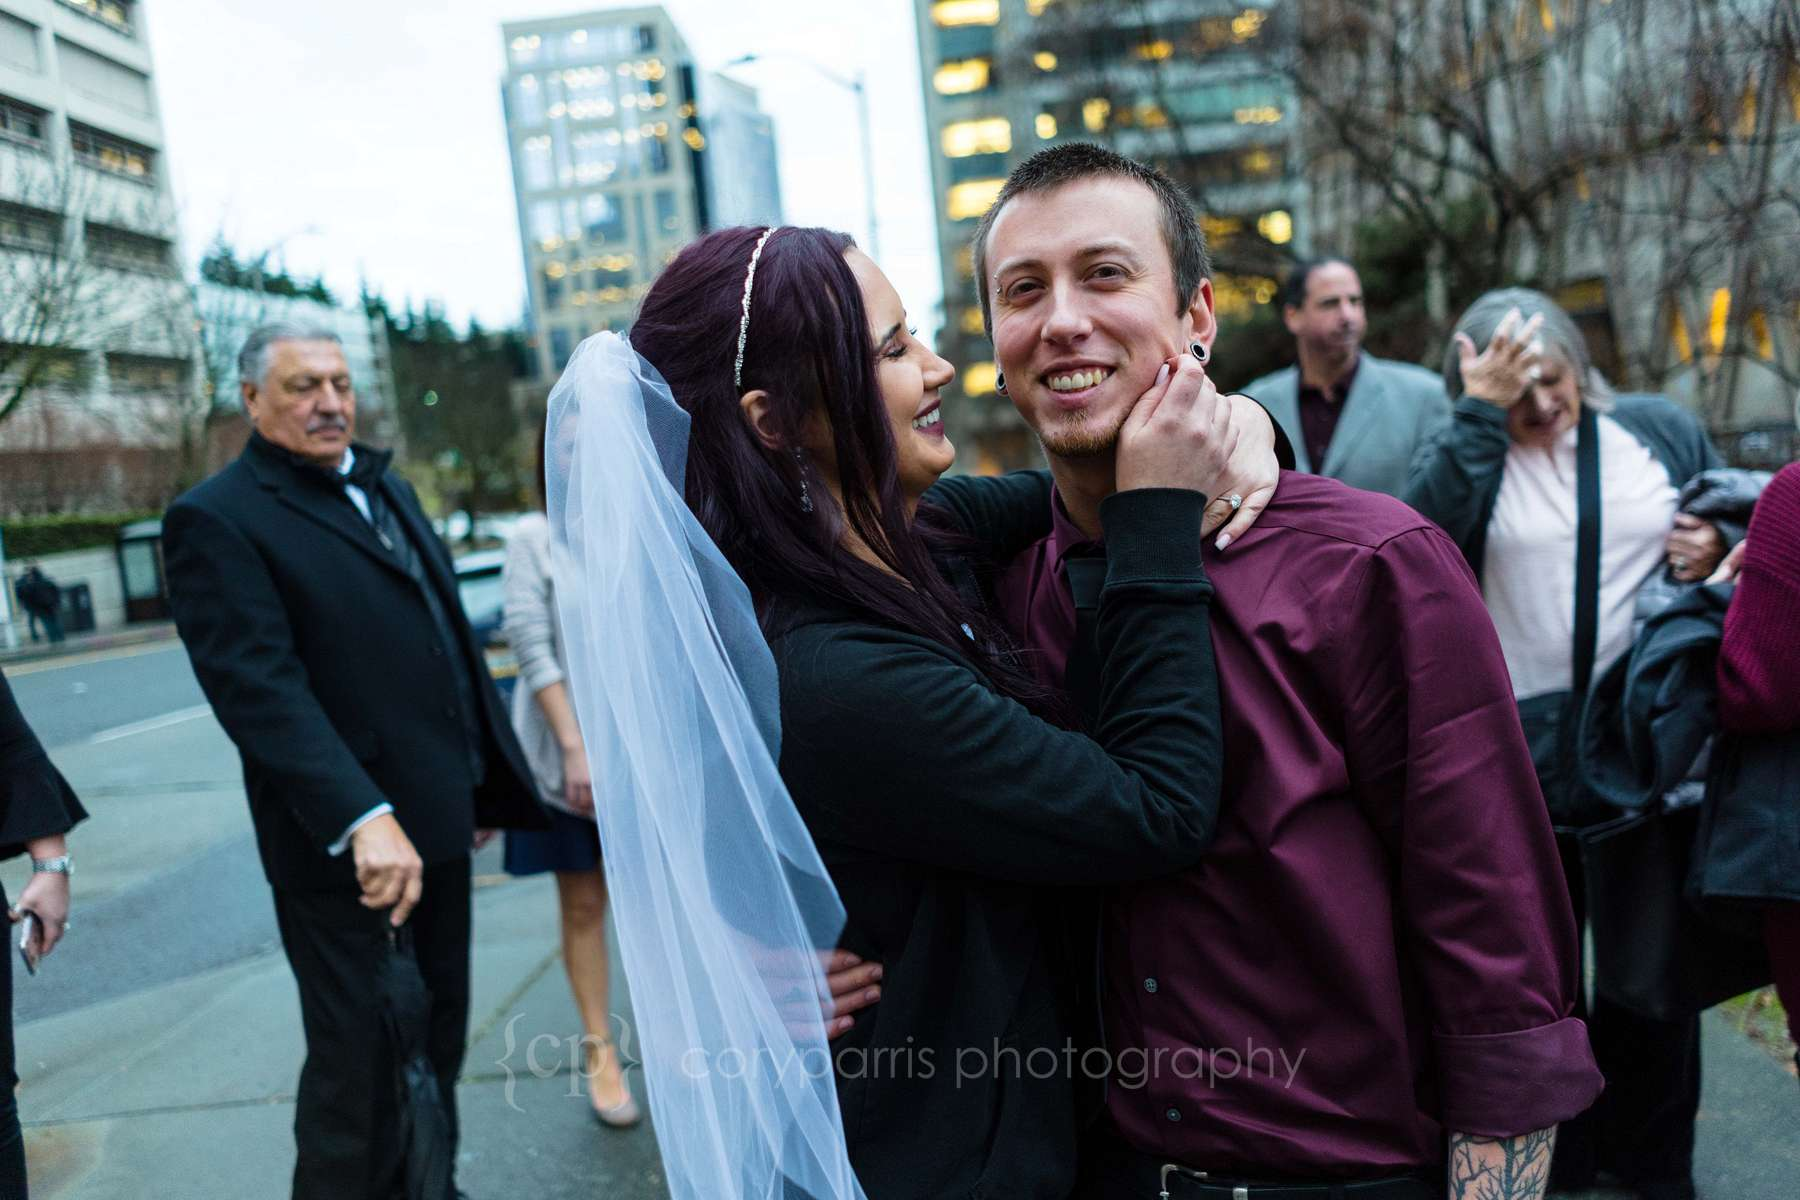 015-Seattle-Courthouse-Wedding-Photography.jpg